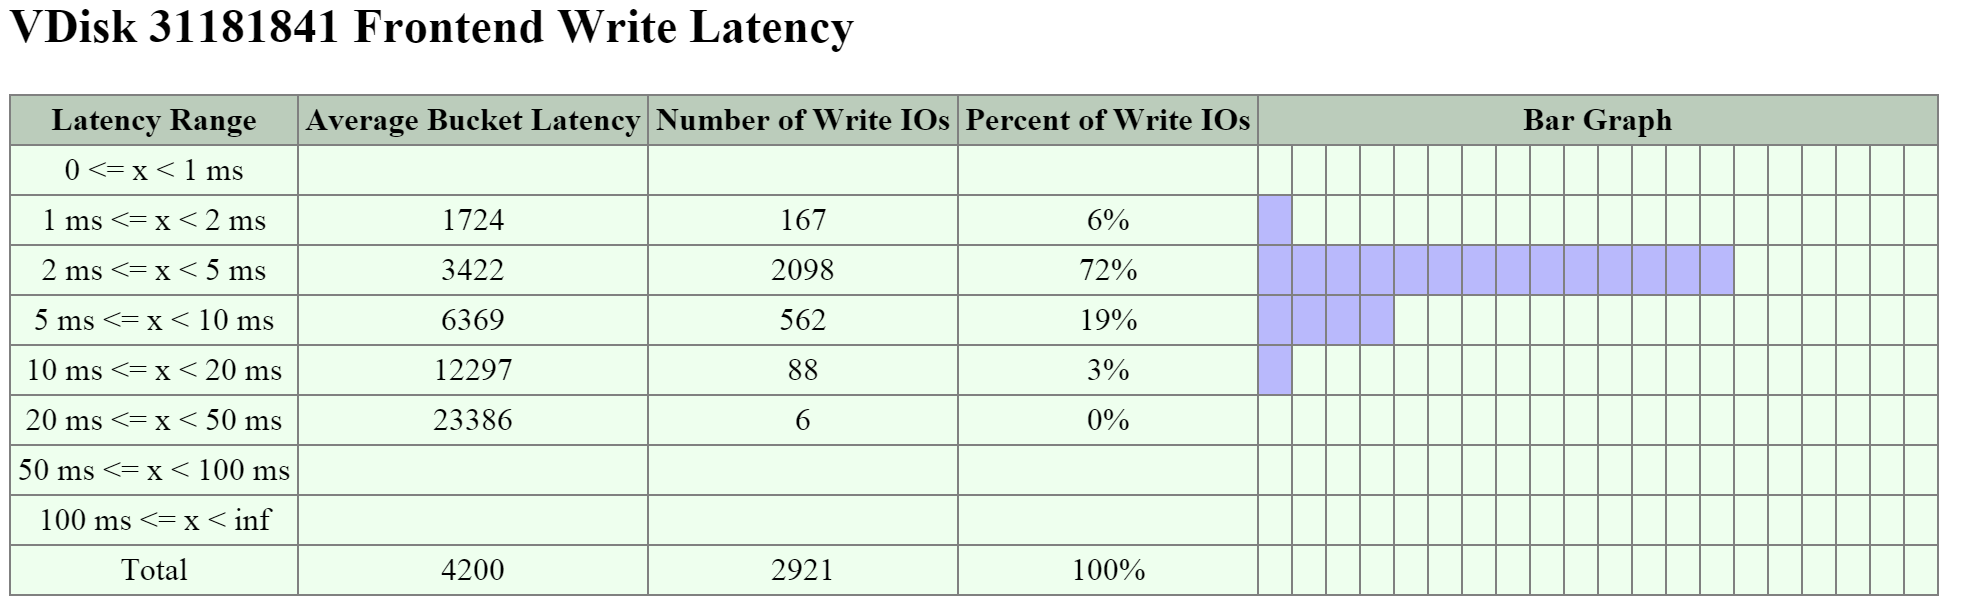 2009 Page - vDisk Stats - Frontend Write Latency